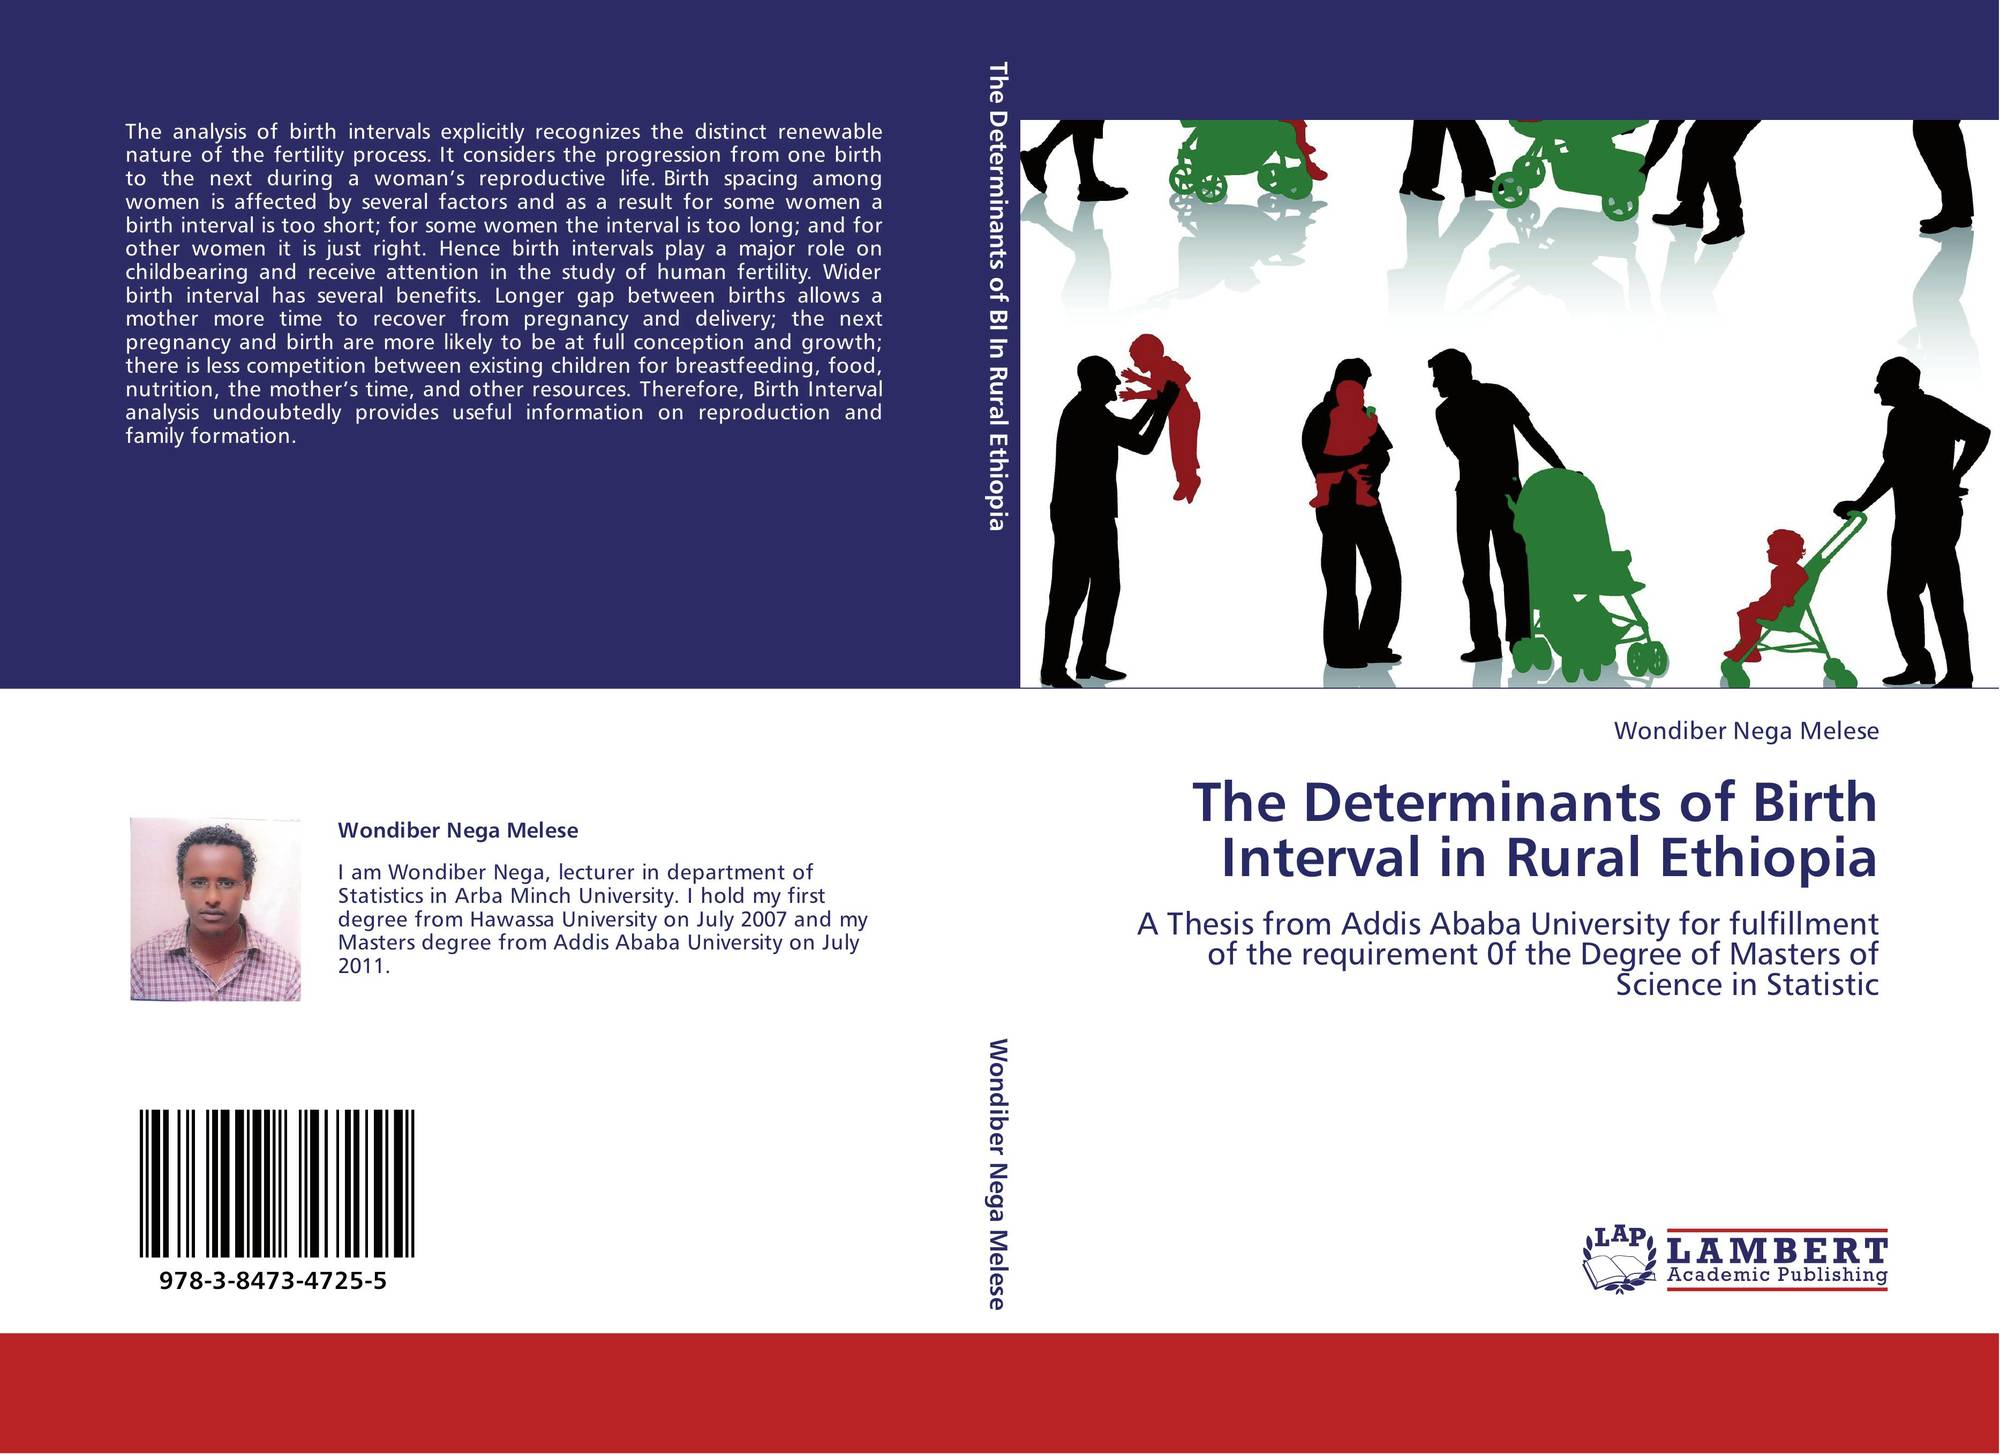 The Determinants of Birth Interval in Rural Ethiopia, 978-3-8473